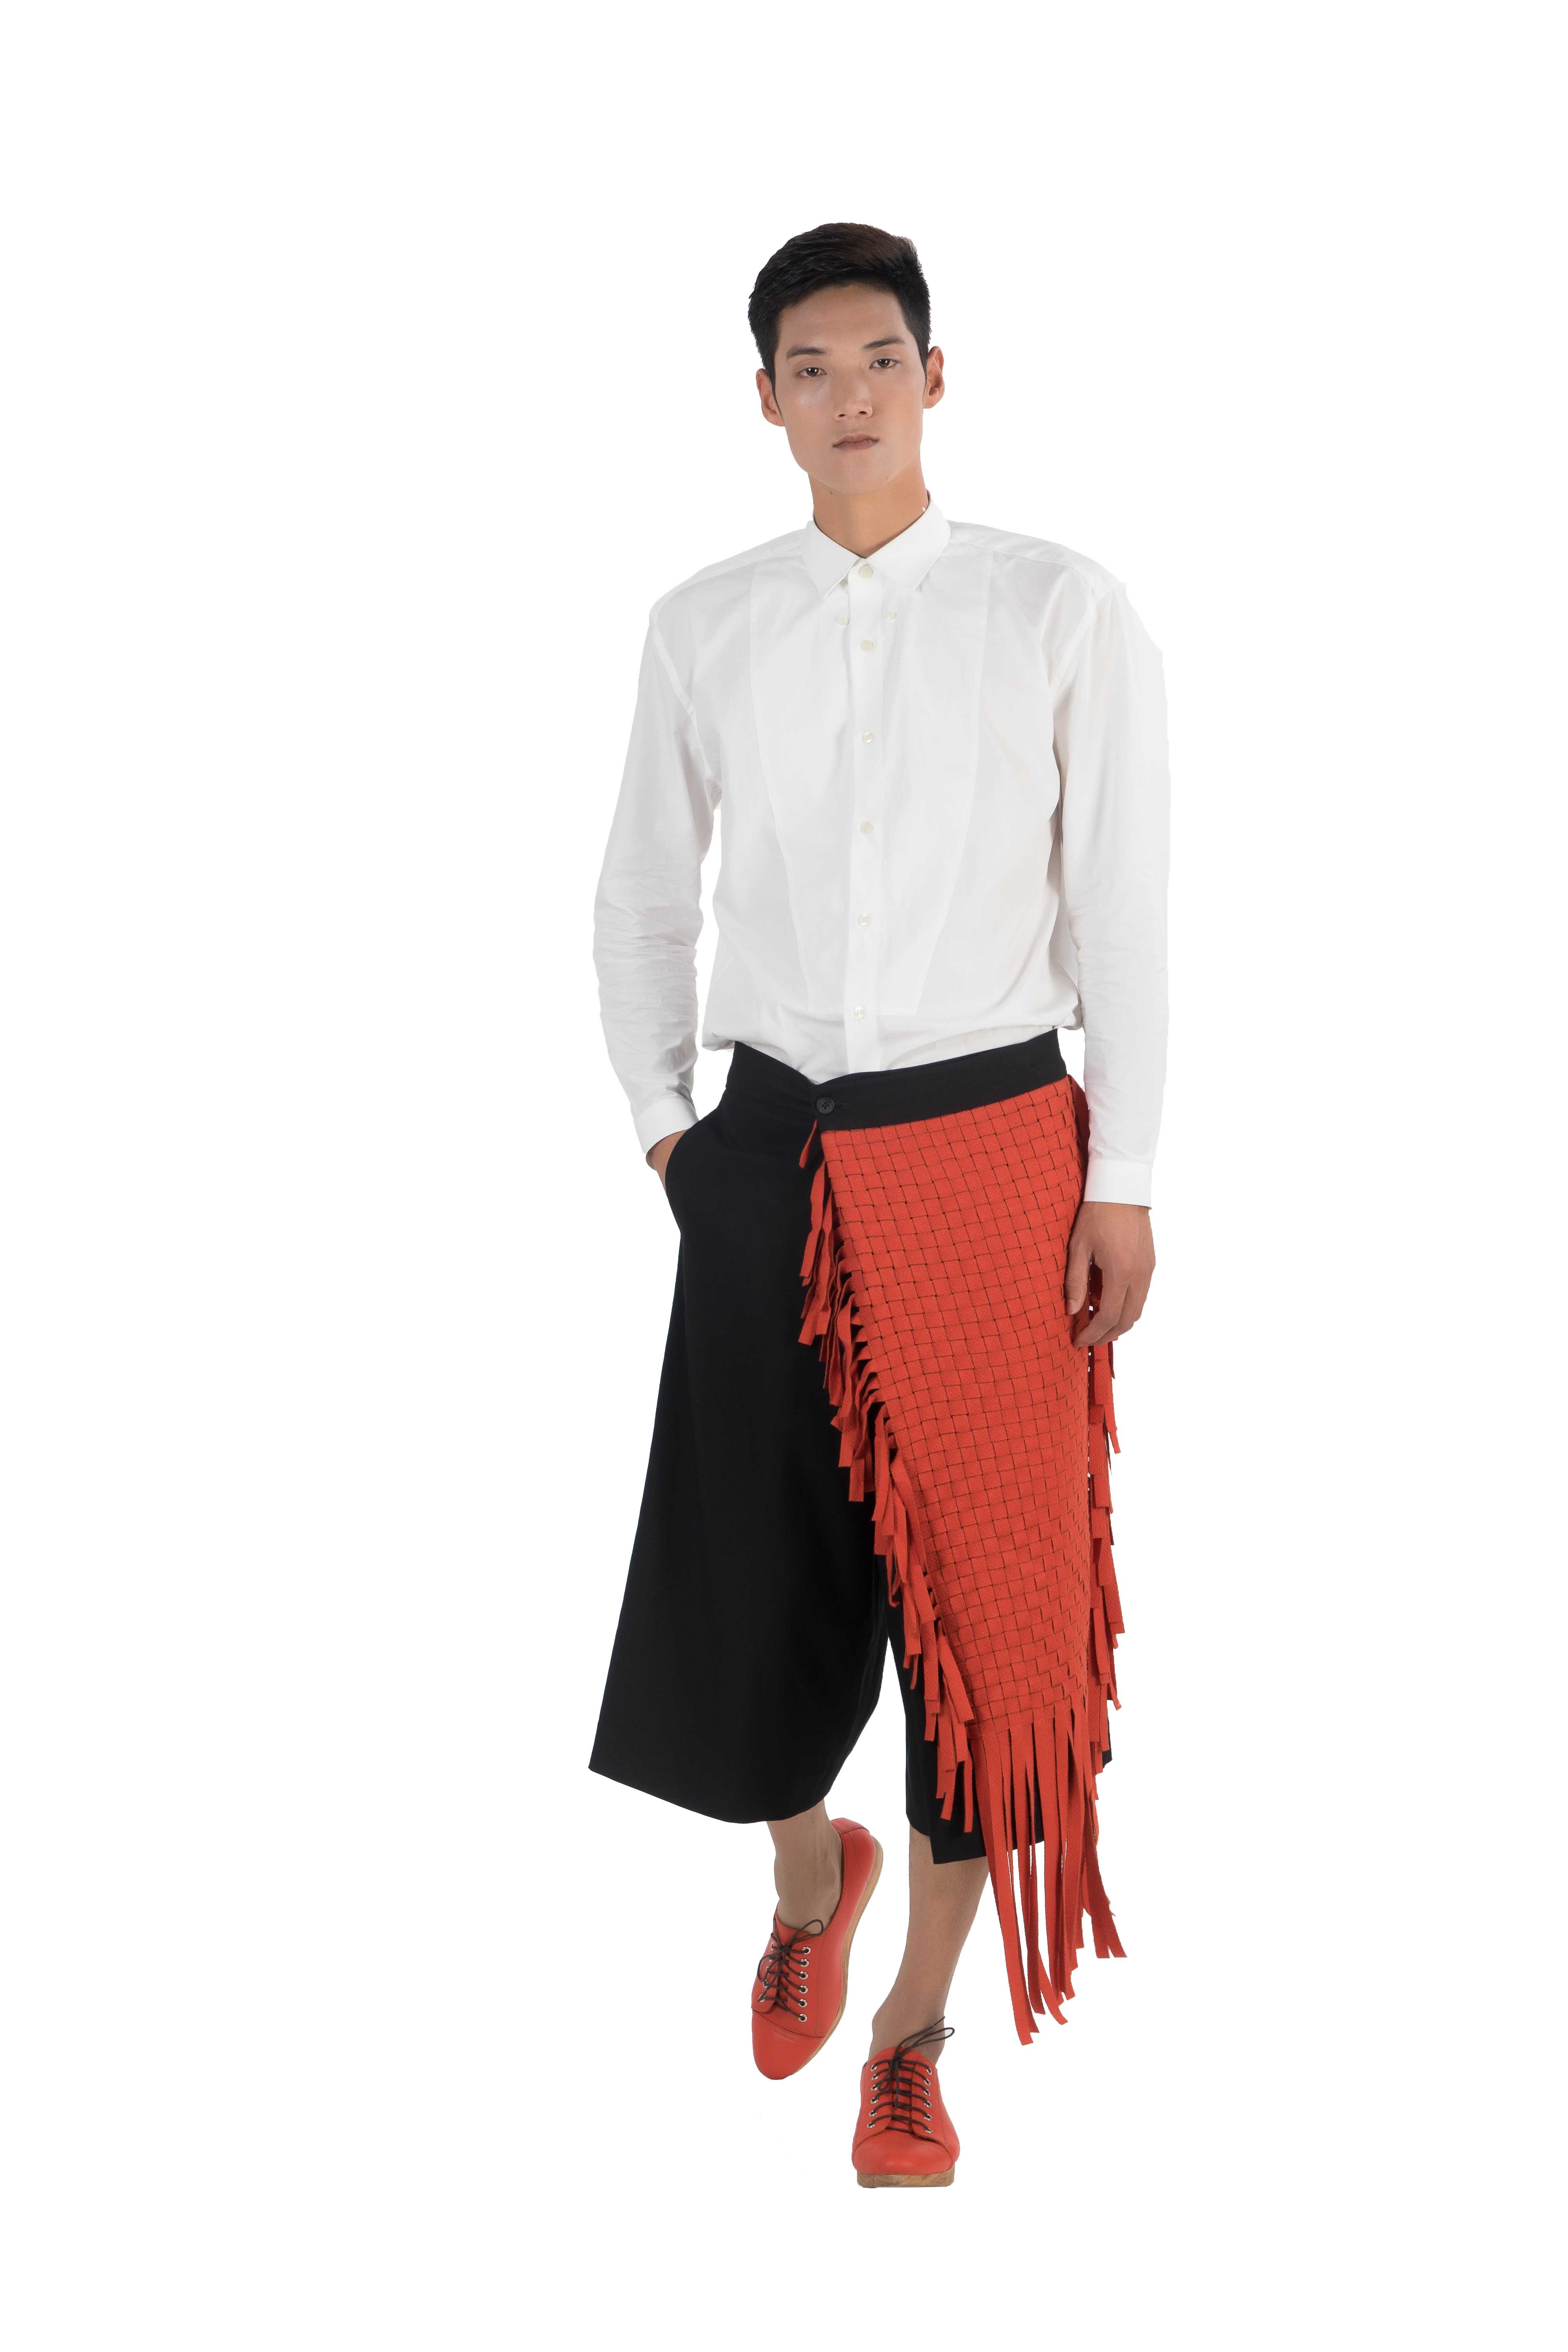 Wrap style knee length wide shorts with orange wool blend woven panel and fringes